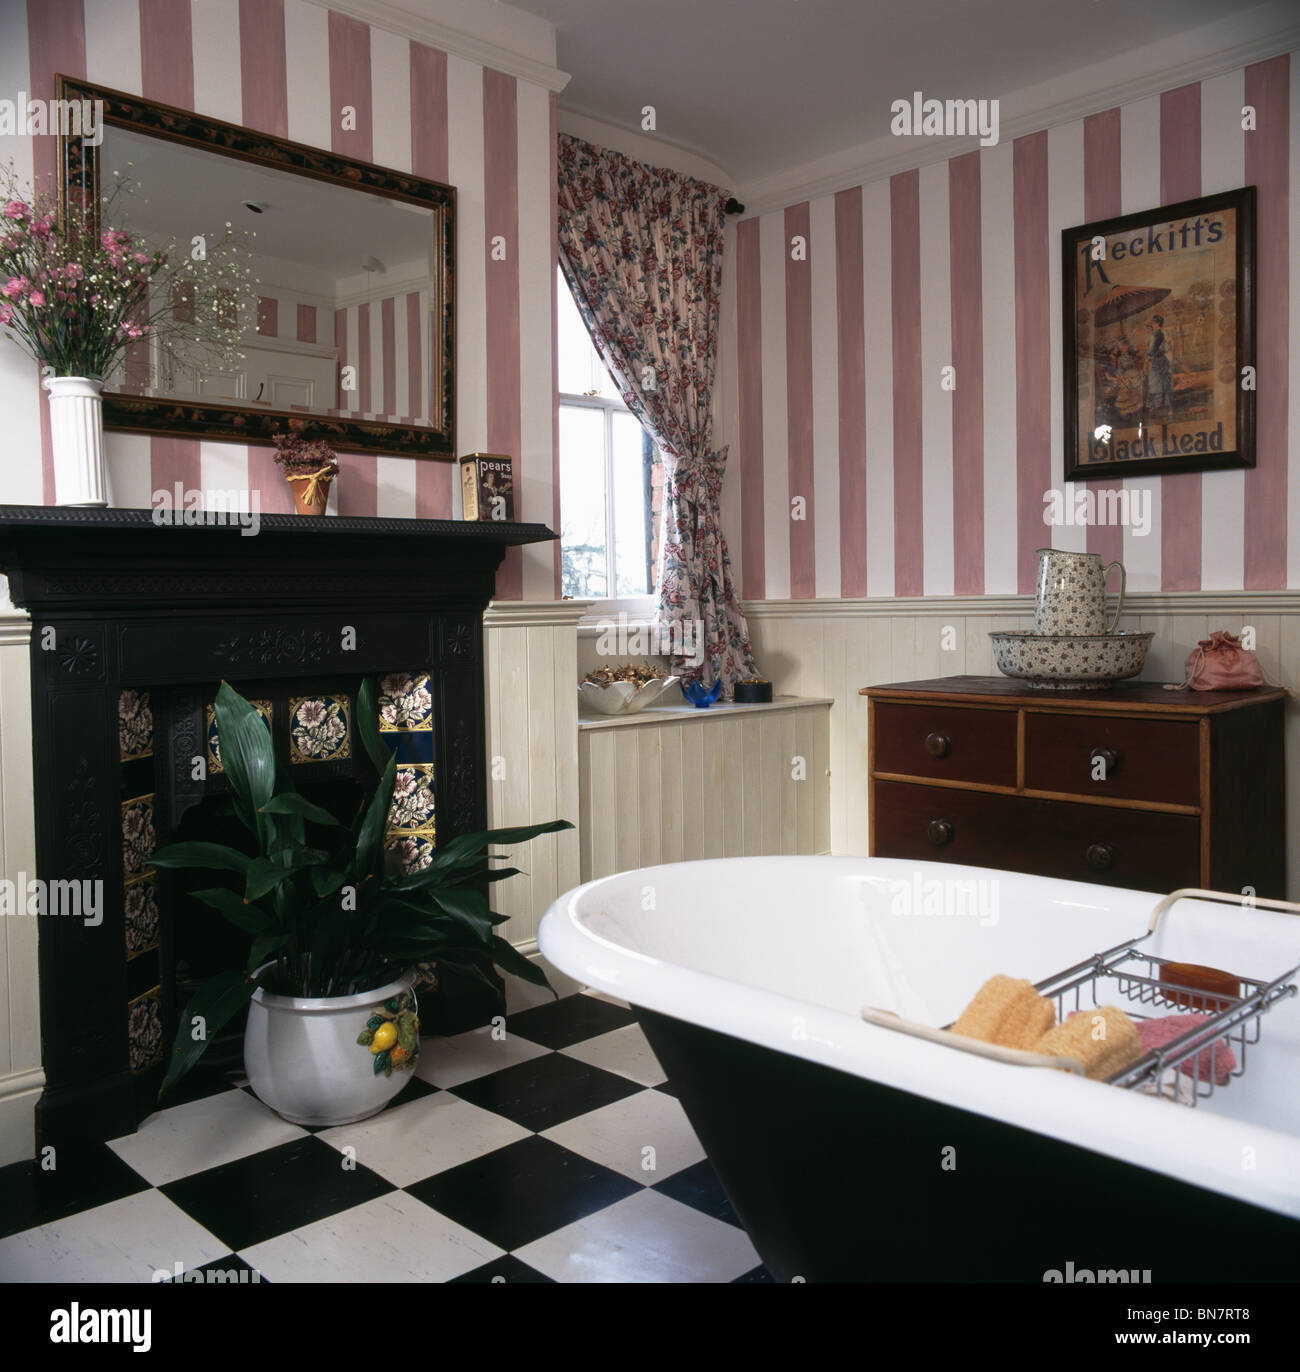 Black white and pink bathroom - Pink Striped Wallpaper And Roll Top Bath In Country Bathroom With Black Cast Iron Fireplace And Black White Vinyl Flooring